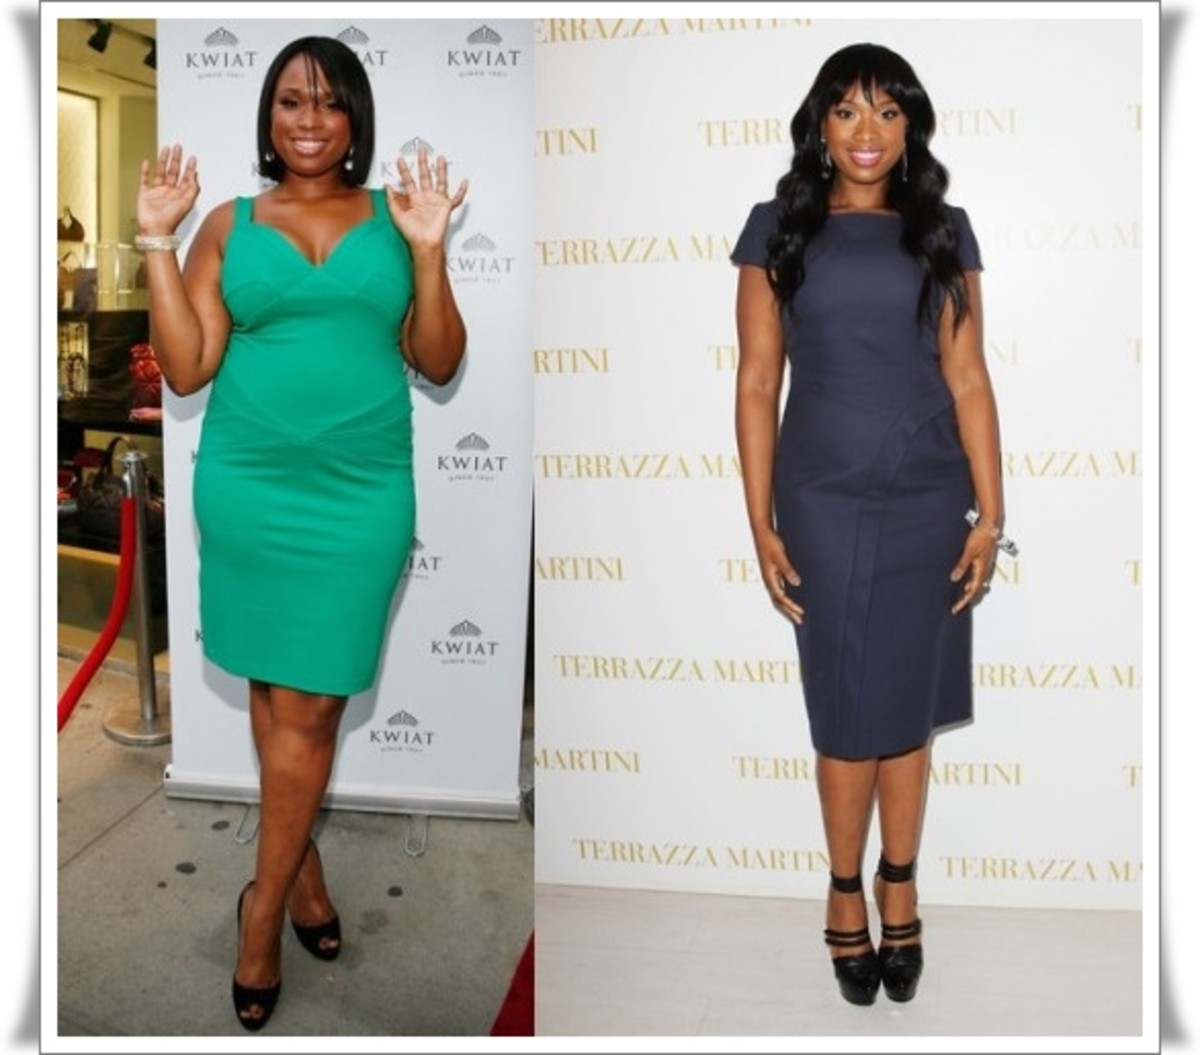 Singer and Academy Award winning actress Jennifer Hudson - before and after she lost 35 lbs on Weight Watchers.  Photo: courtesy of fashiondailybomb.co